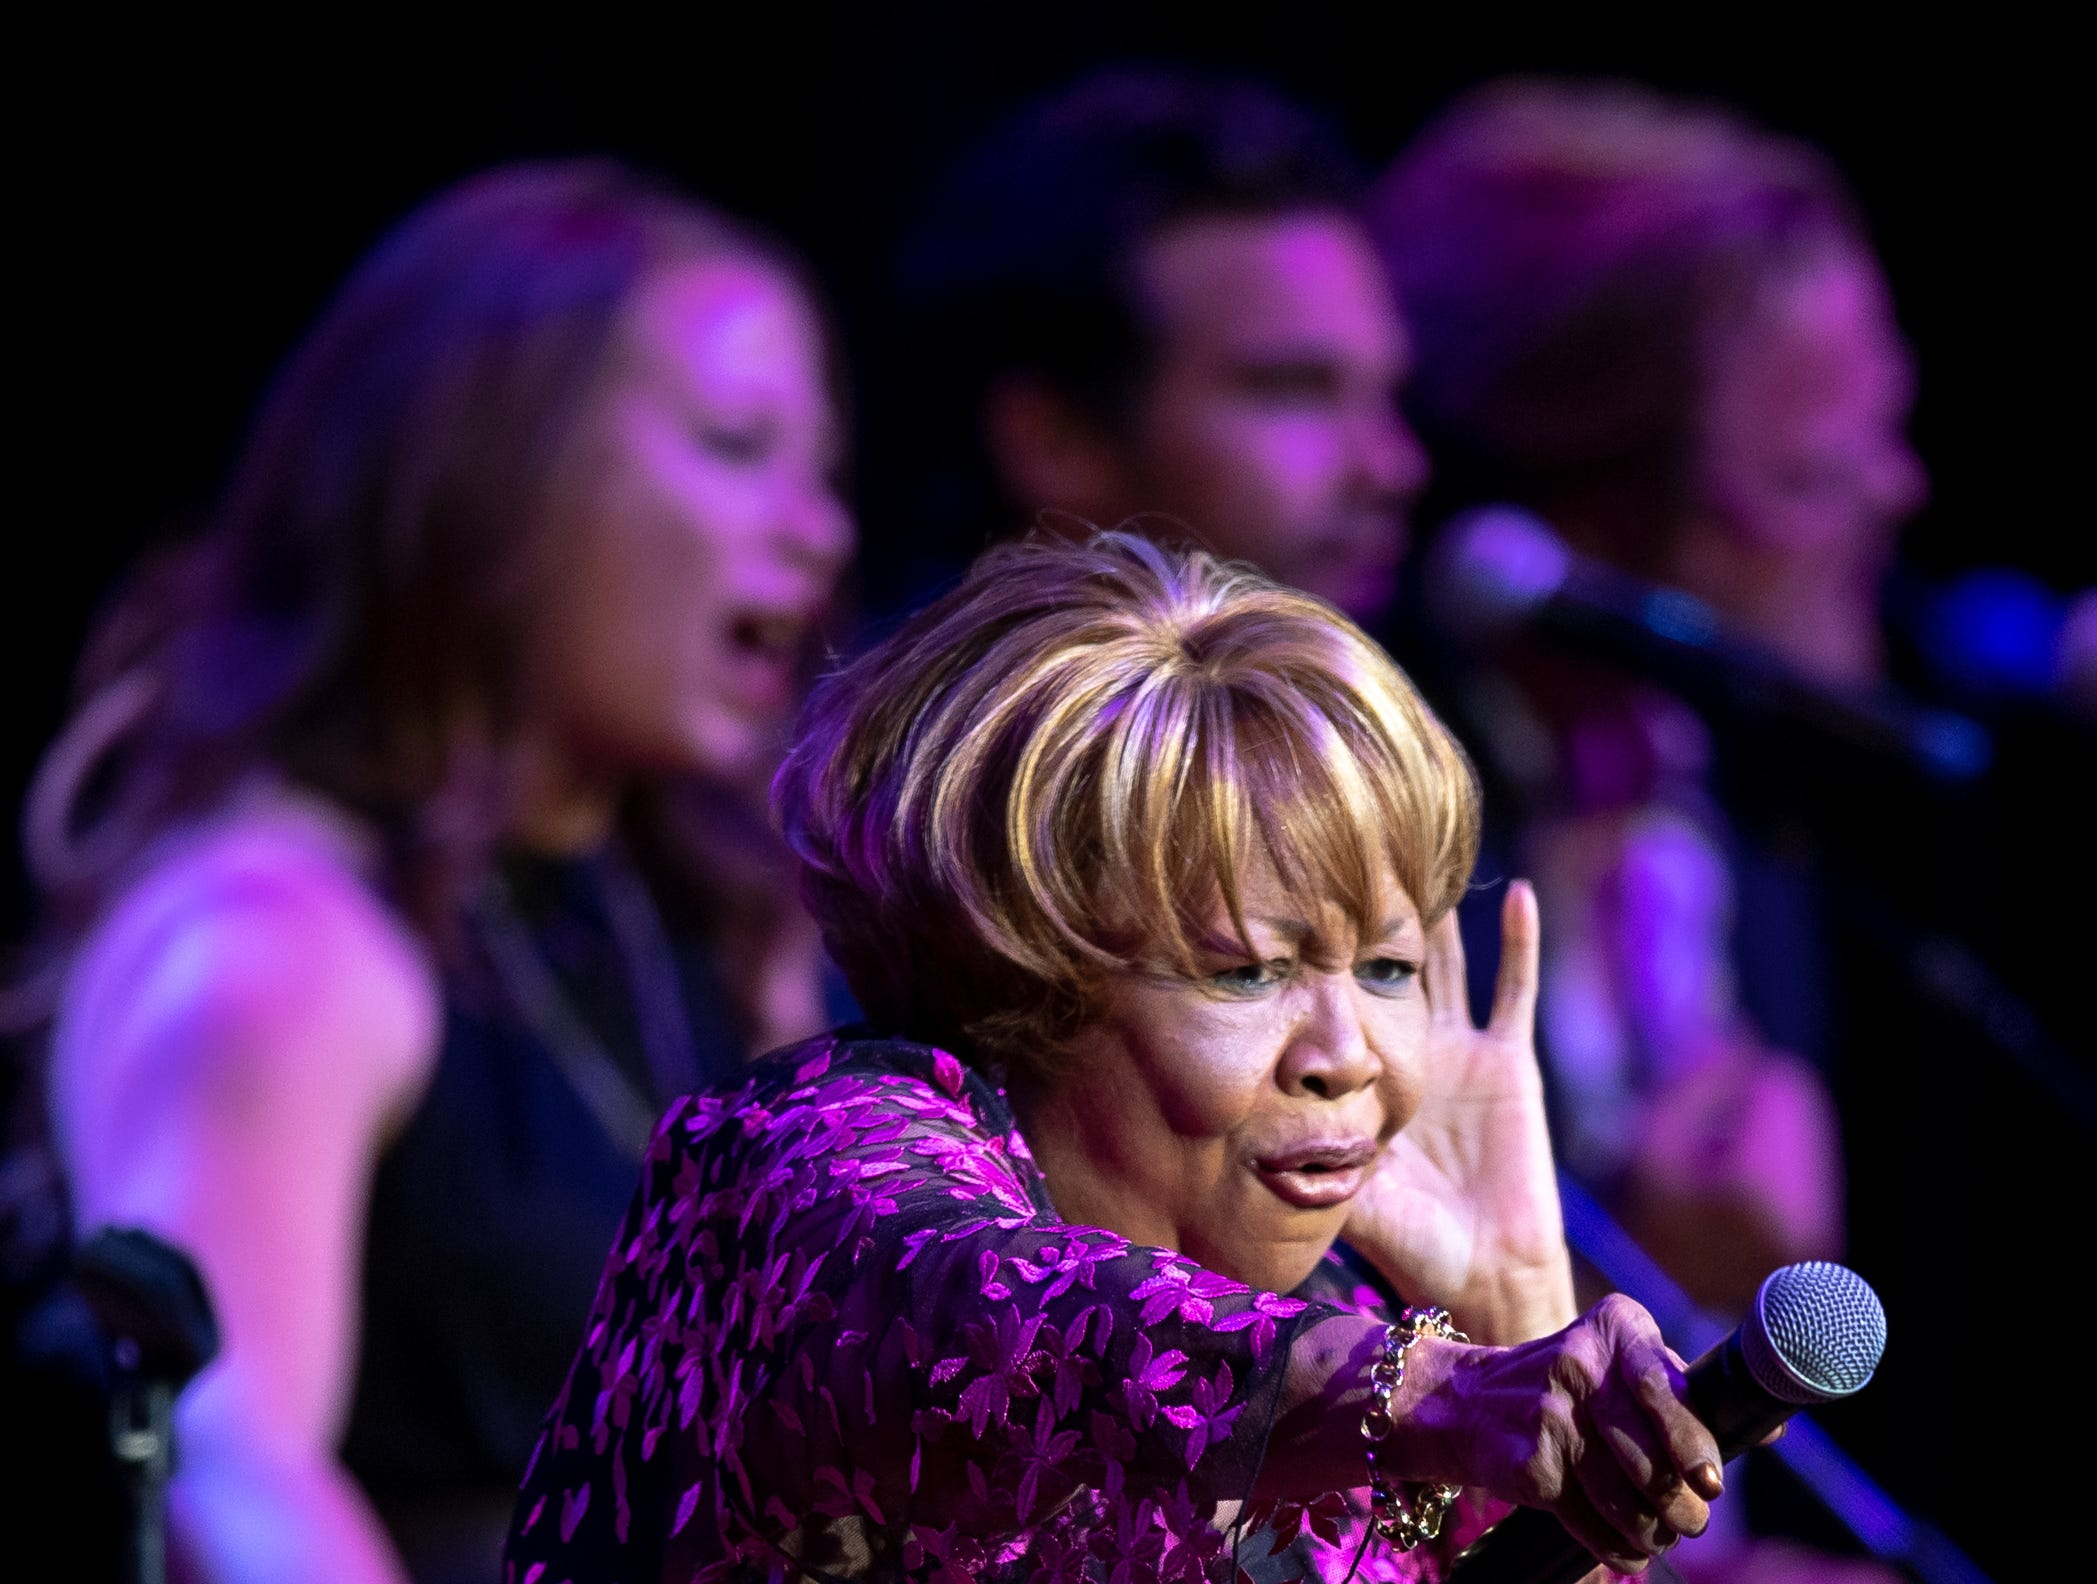 Mavis Staples performs with The Lone Bellow during the Mavis and Friends concert at the Ryman Auditorium in Nashville, Tenn., Wednesday, May 15, 2019.